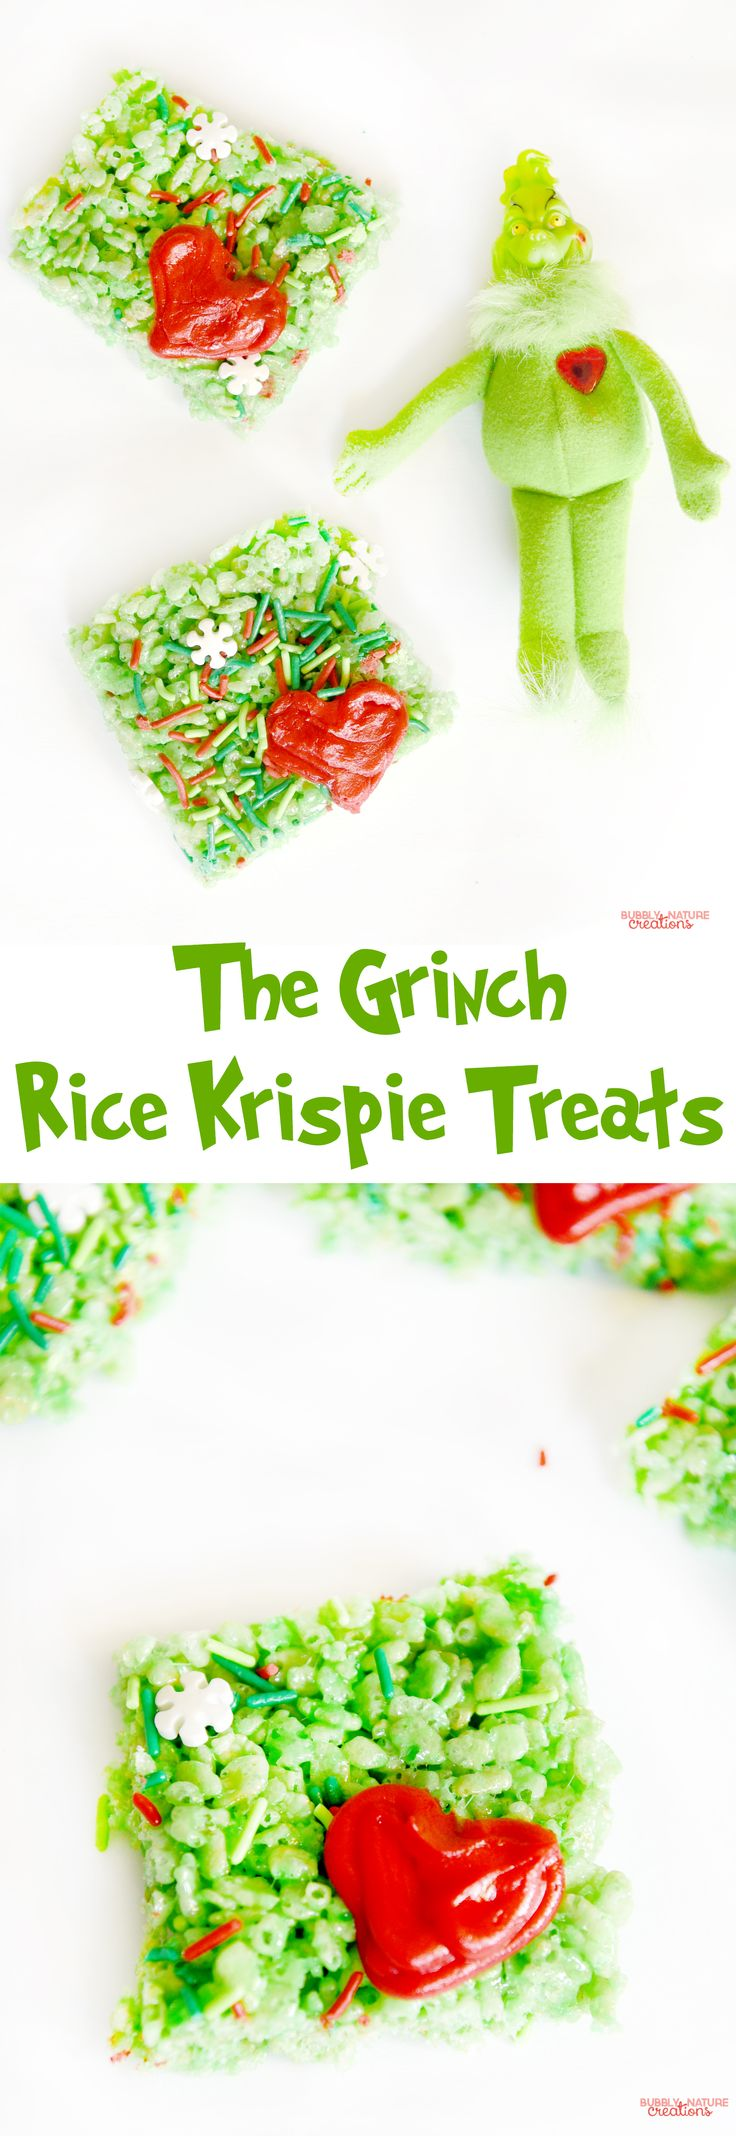 The Grinch inspired Rice Krispie Treats Cereal Bars!! So fun for Christmas. Make these and watch The Grinch!!!